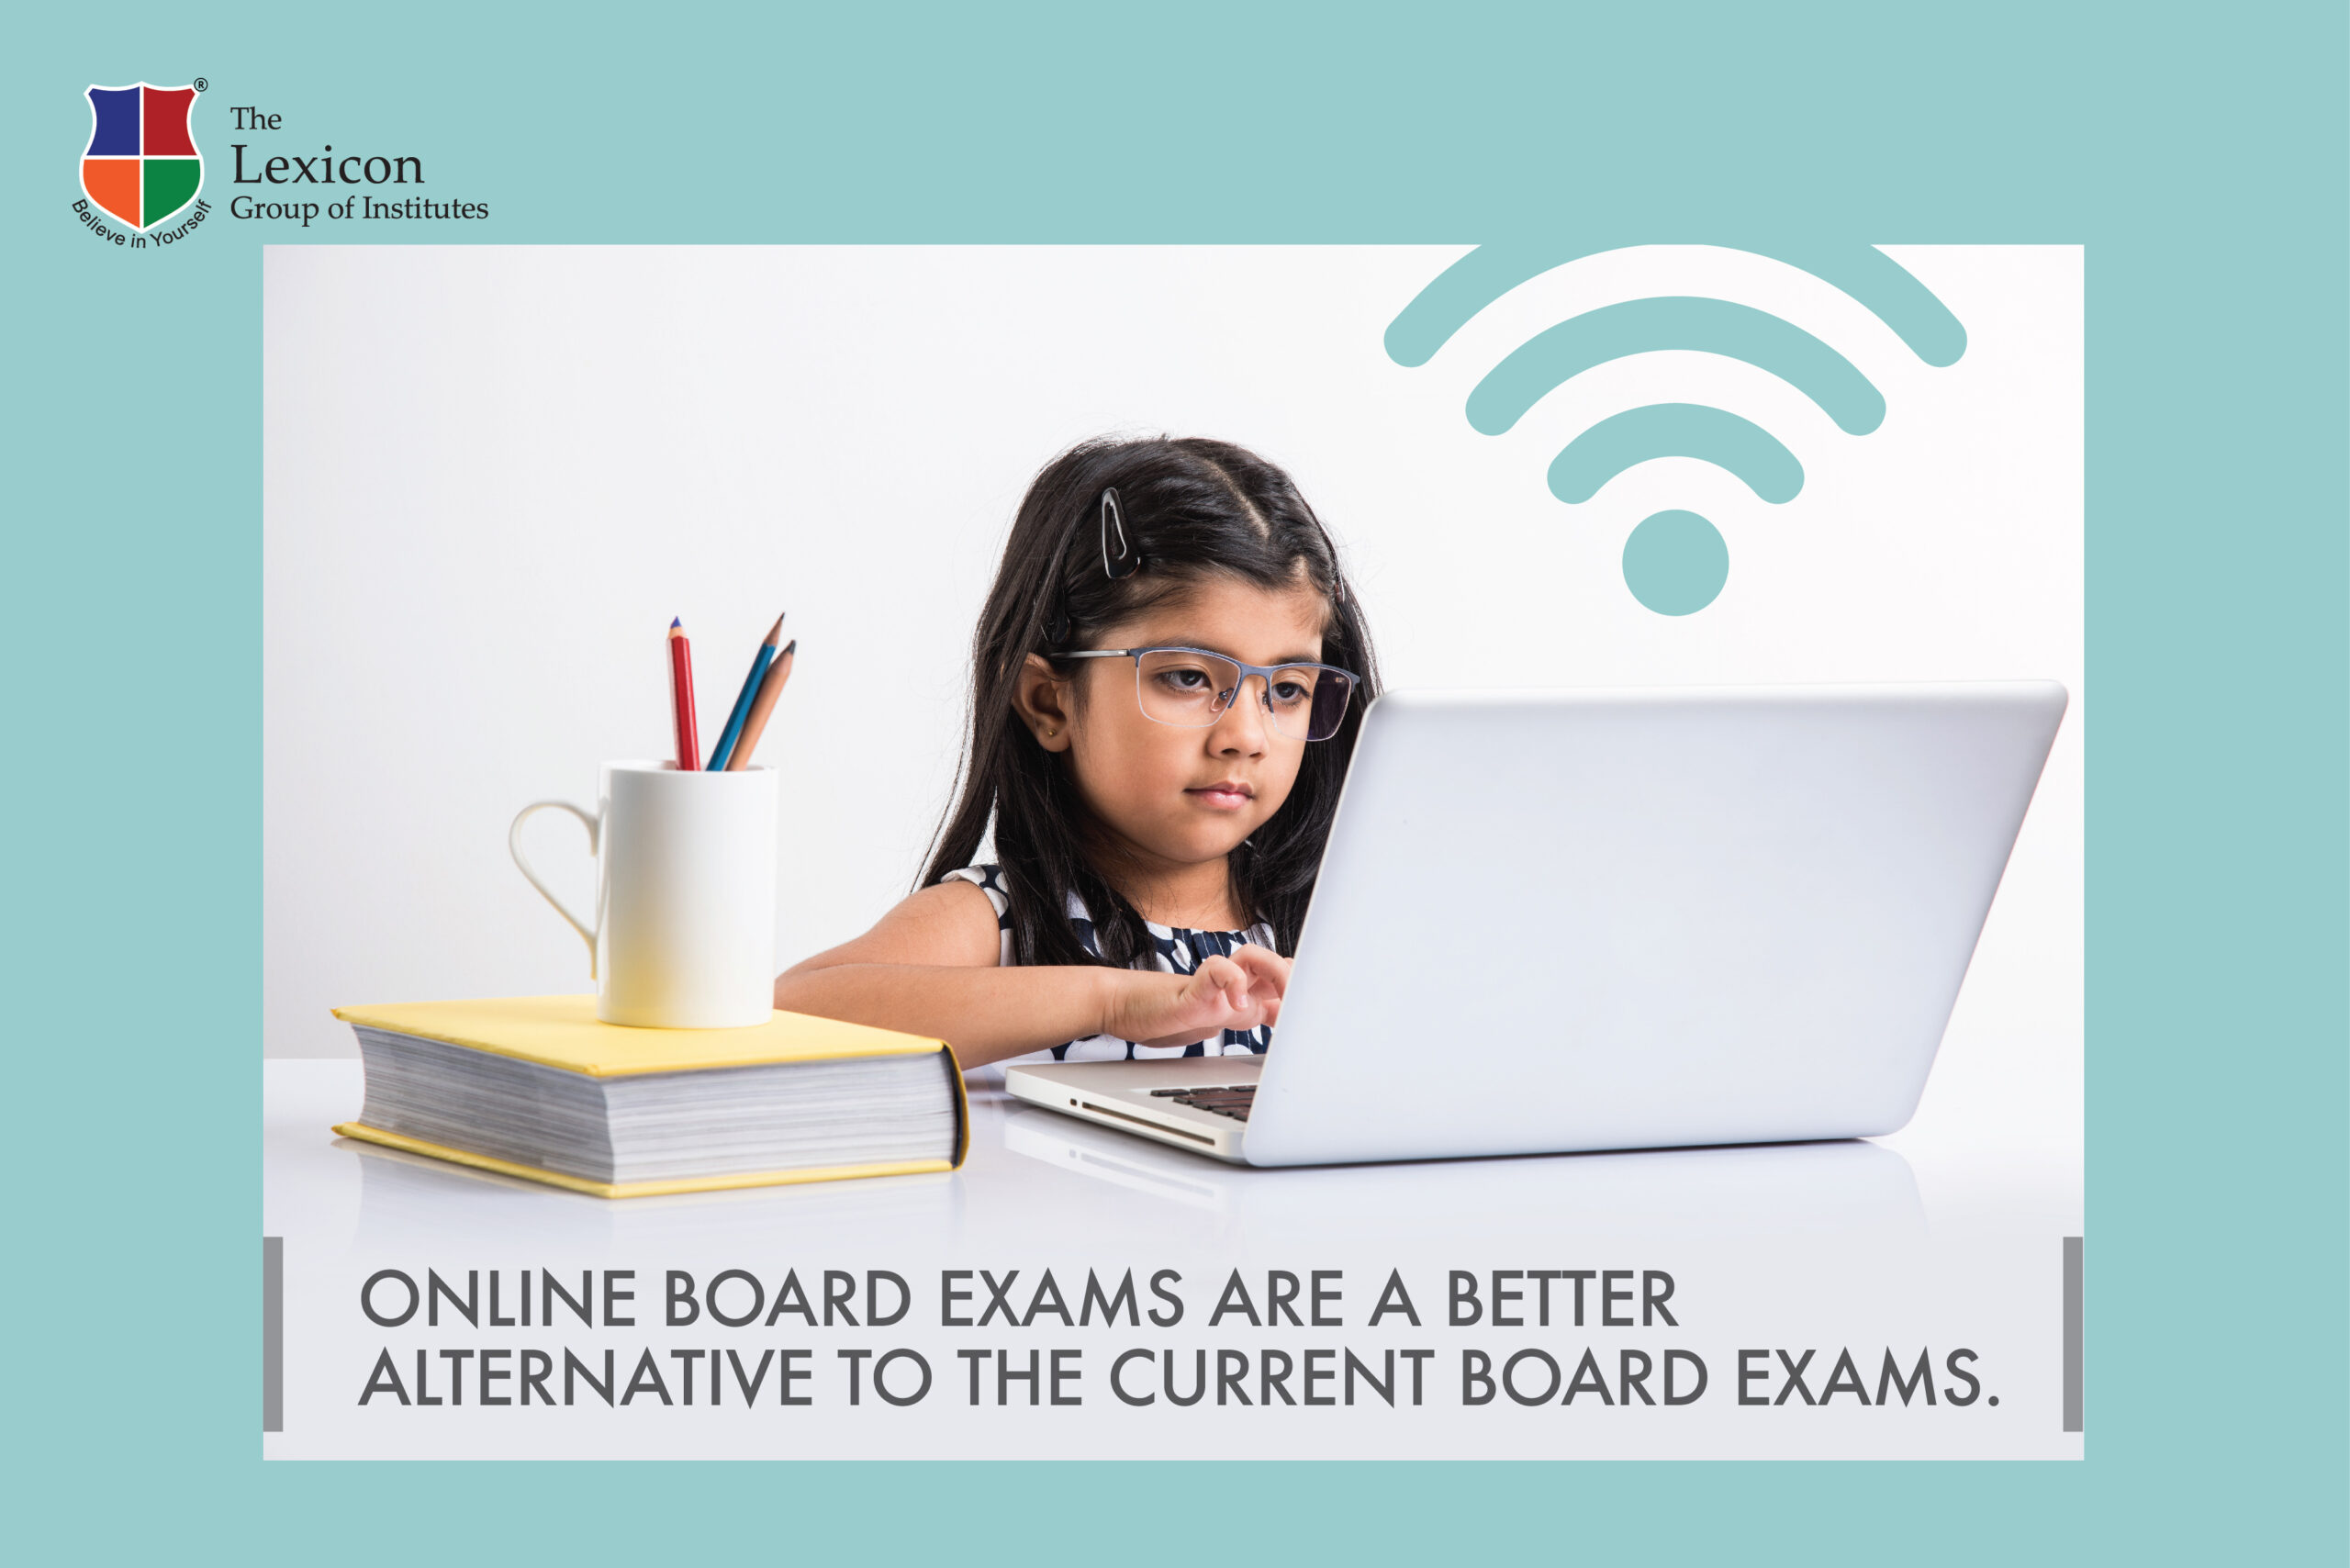 Online board exams are better alternative to current board exams